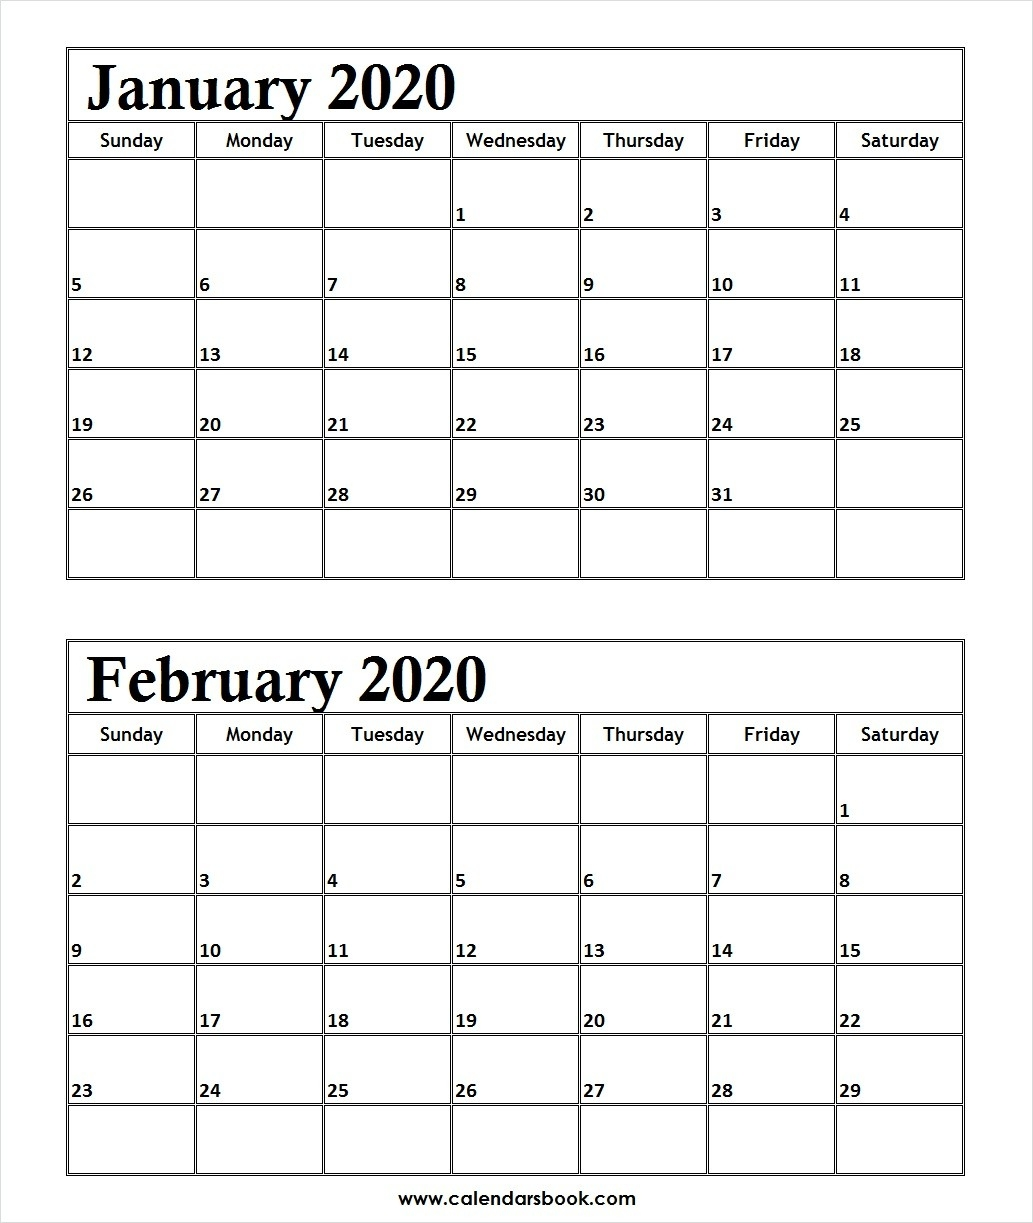 Print January February 2020 Calendar Template | 2 Month Calendar-January And Feb 2020 Calendar